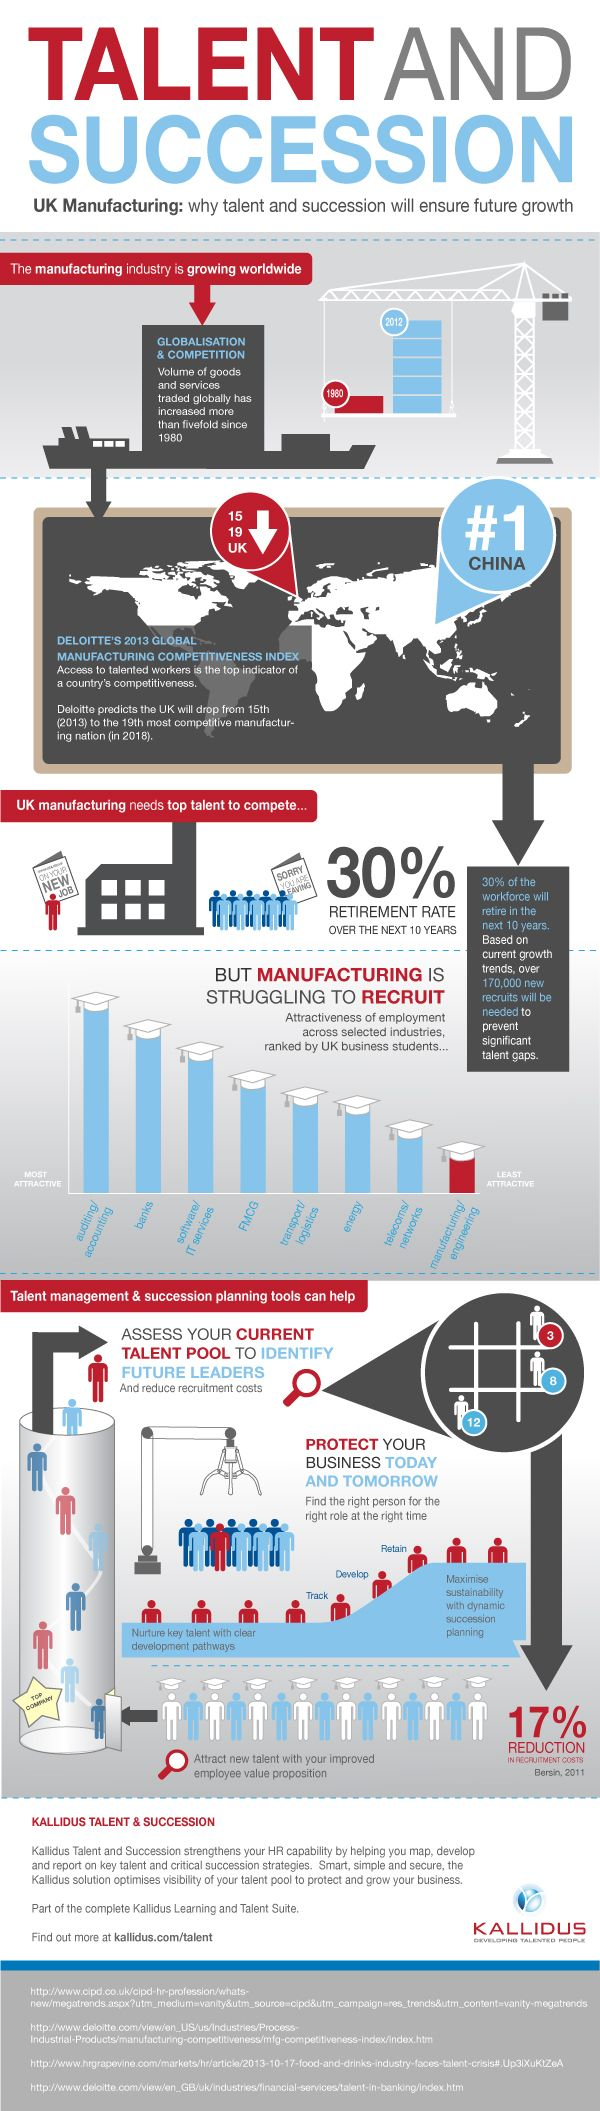 talent and succession in the manufacturing industry - my very first infographic!